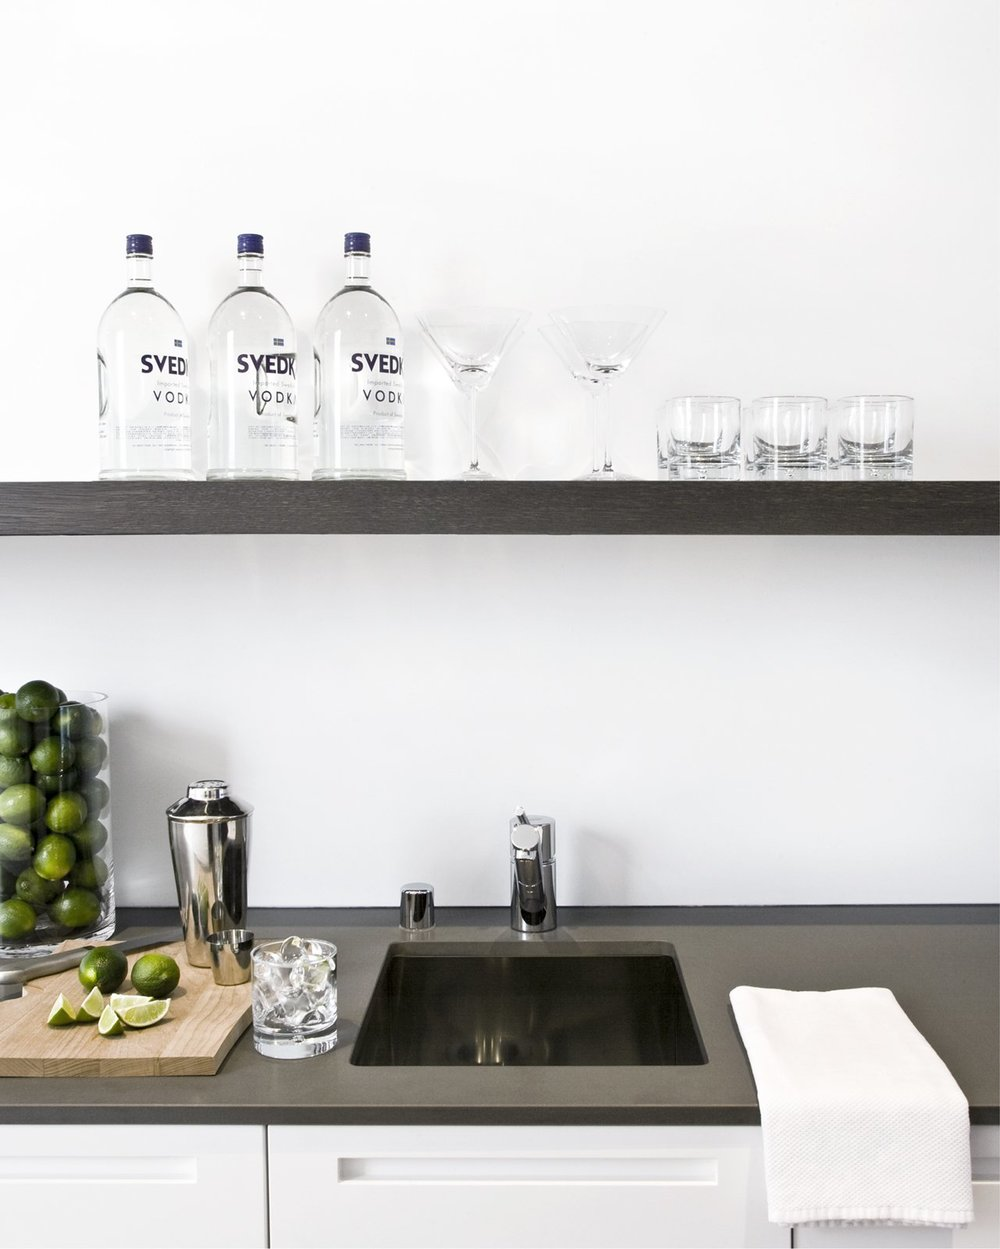 The wet bar at the end of the kitchen is equipped with a spout for filtered water, ice maker, wine fridge, and over-sink shelving—and is the happy-hour hotspot.  Ben Mayorga Photography